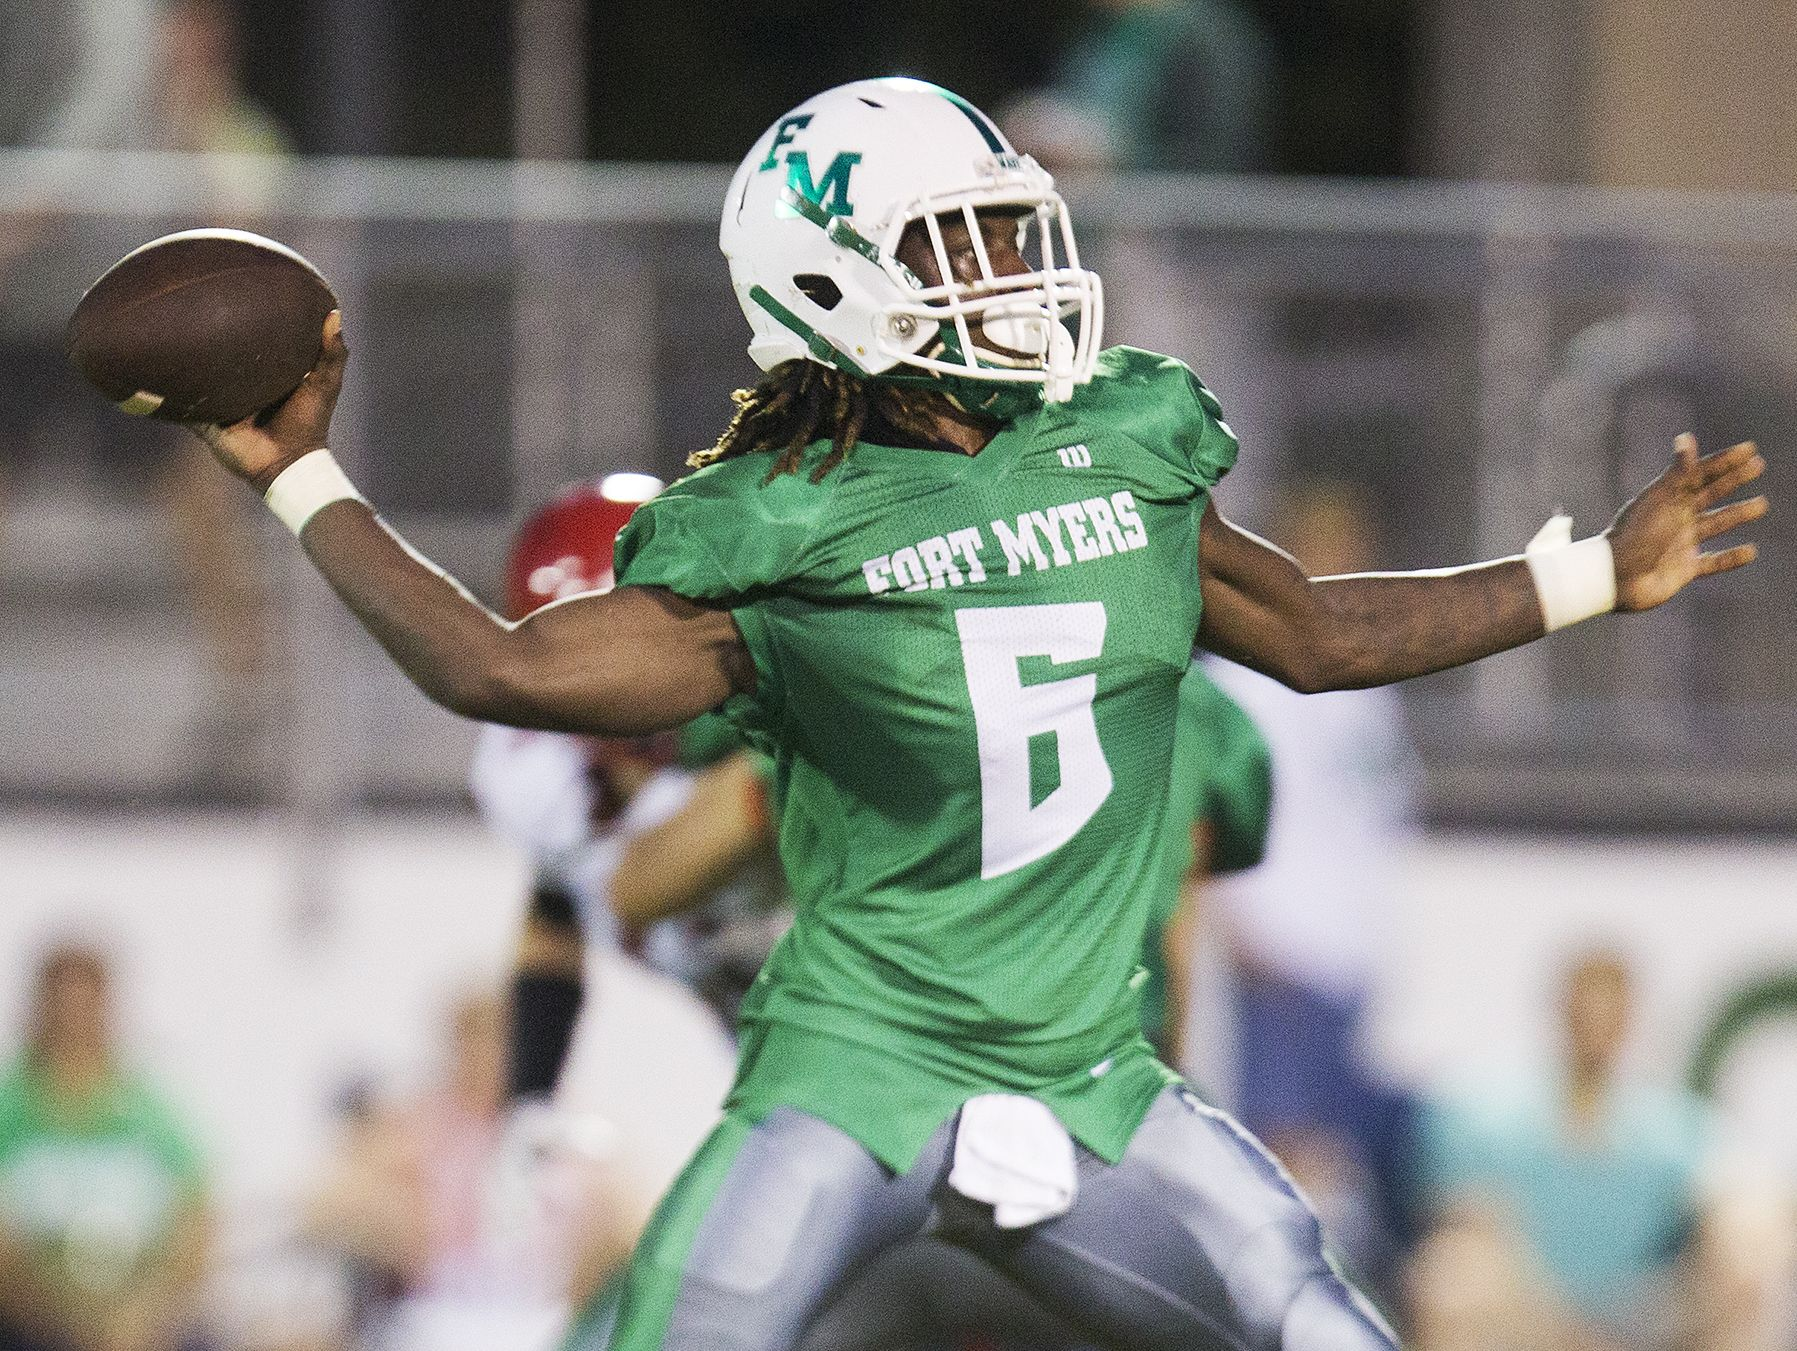 Darrian Felix and Fort Myers jumped to No. 2 in the Lee County Fab 5.